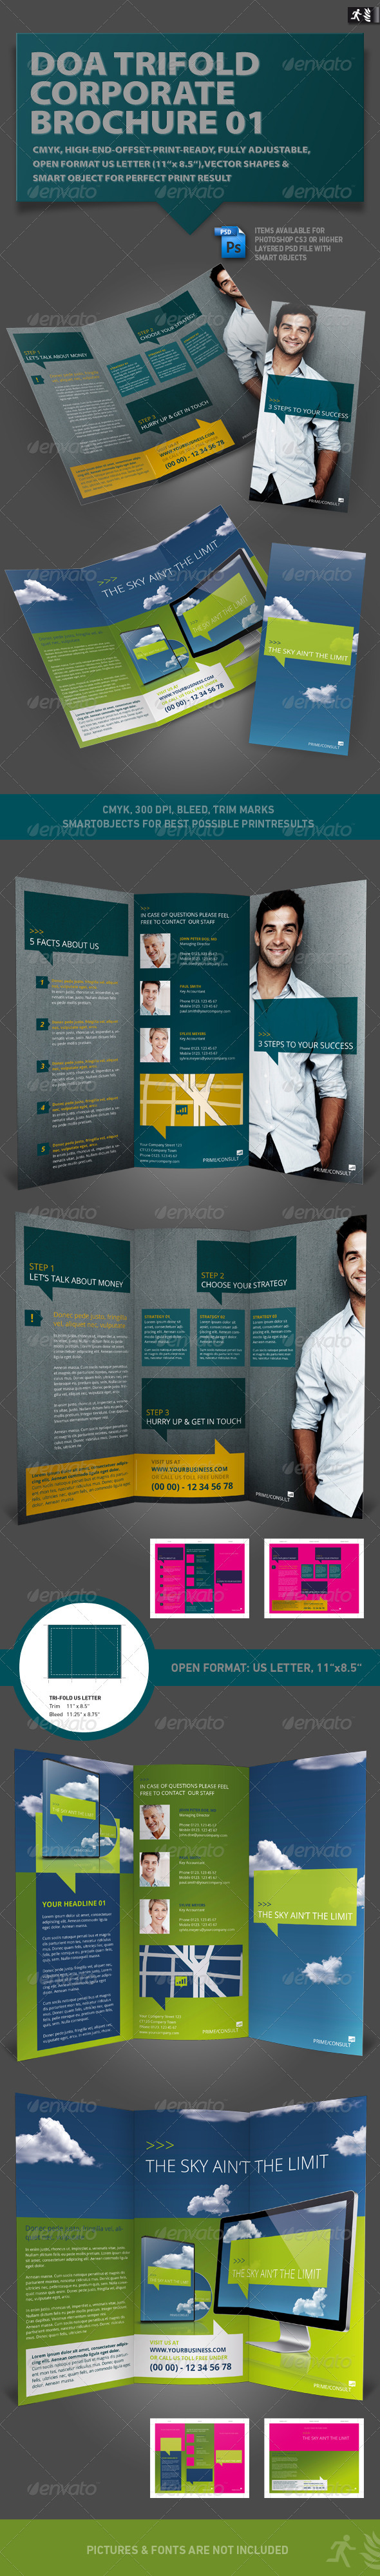 DOA Trifold Corporate Brochure 01 - Informational Brochures